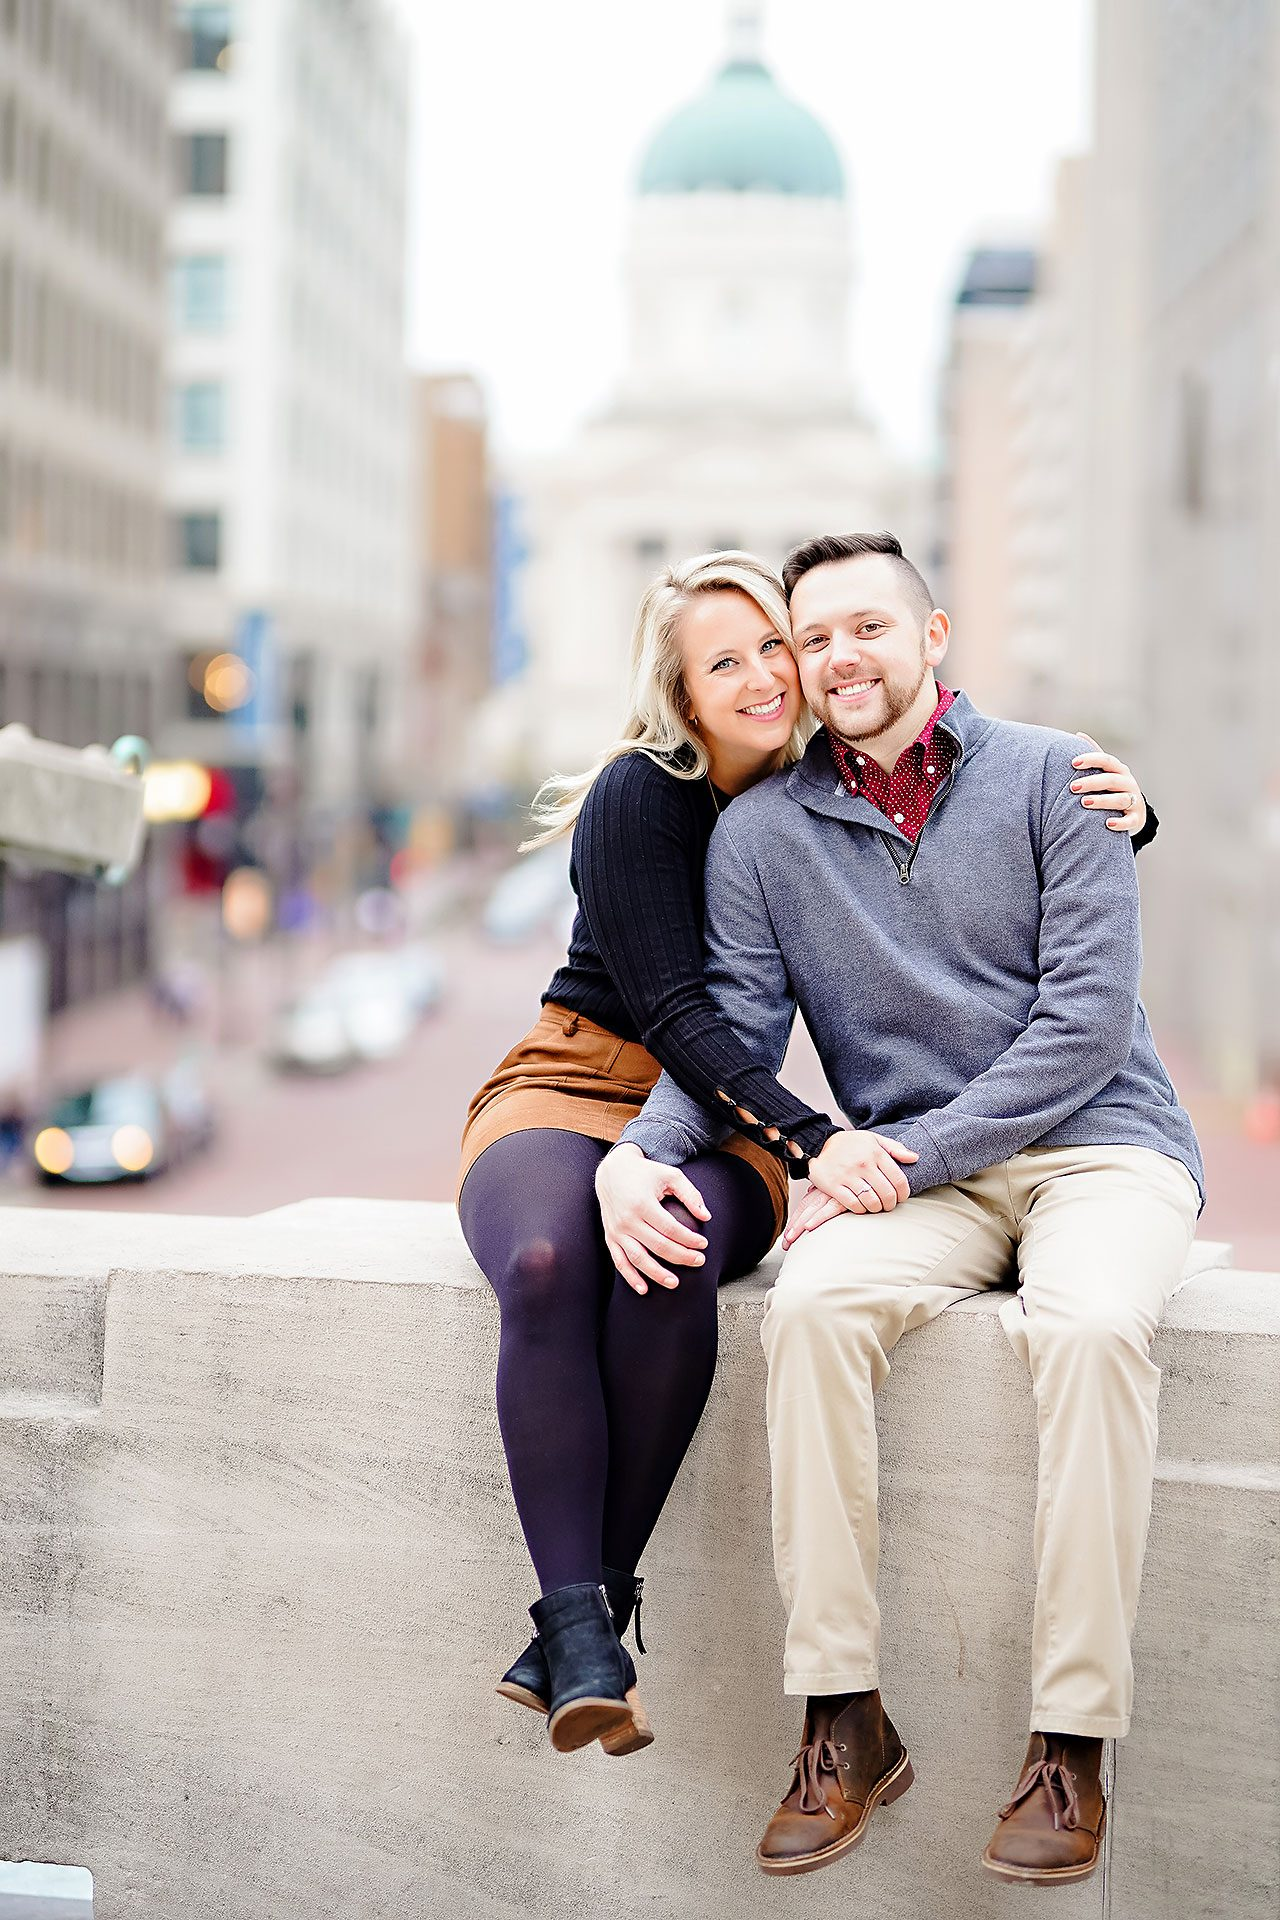 Kristen Jonny Indianapolis Downtown Engagement Session 106